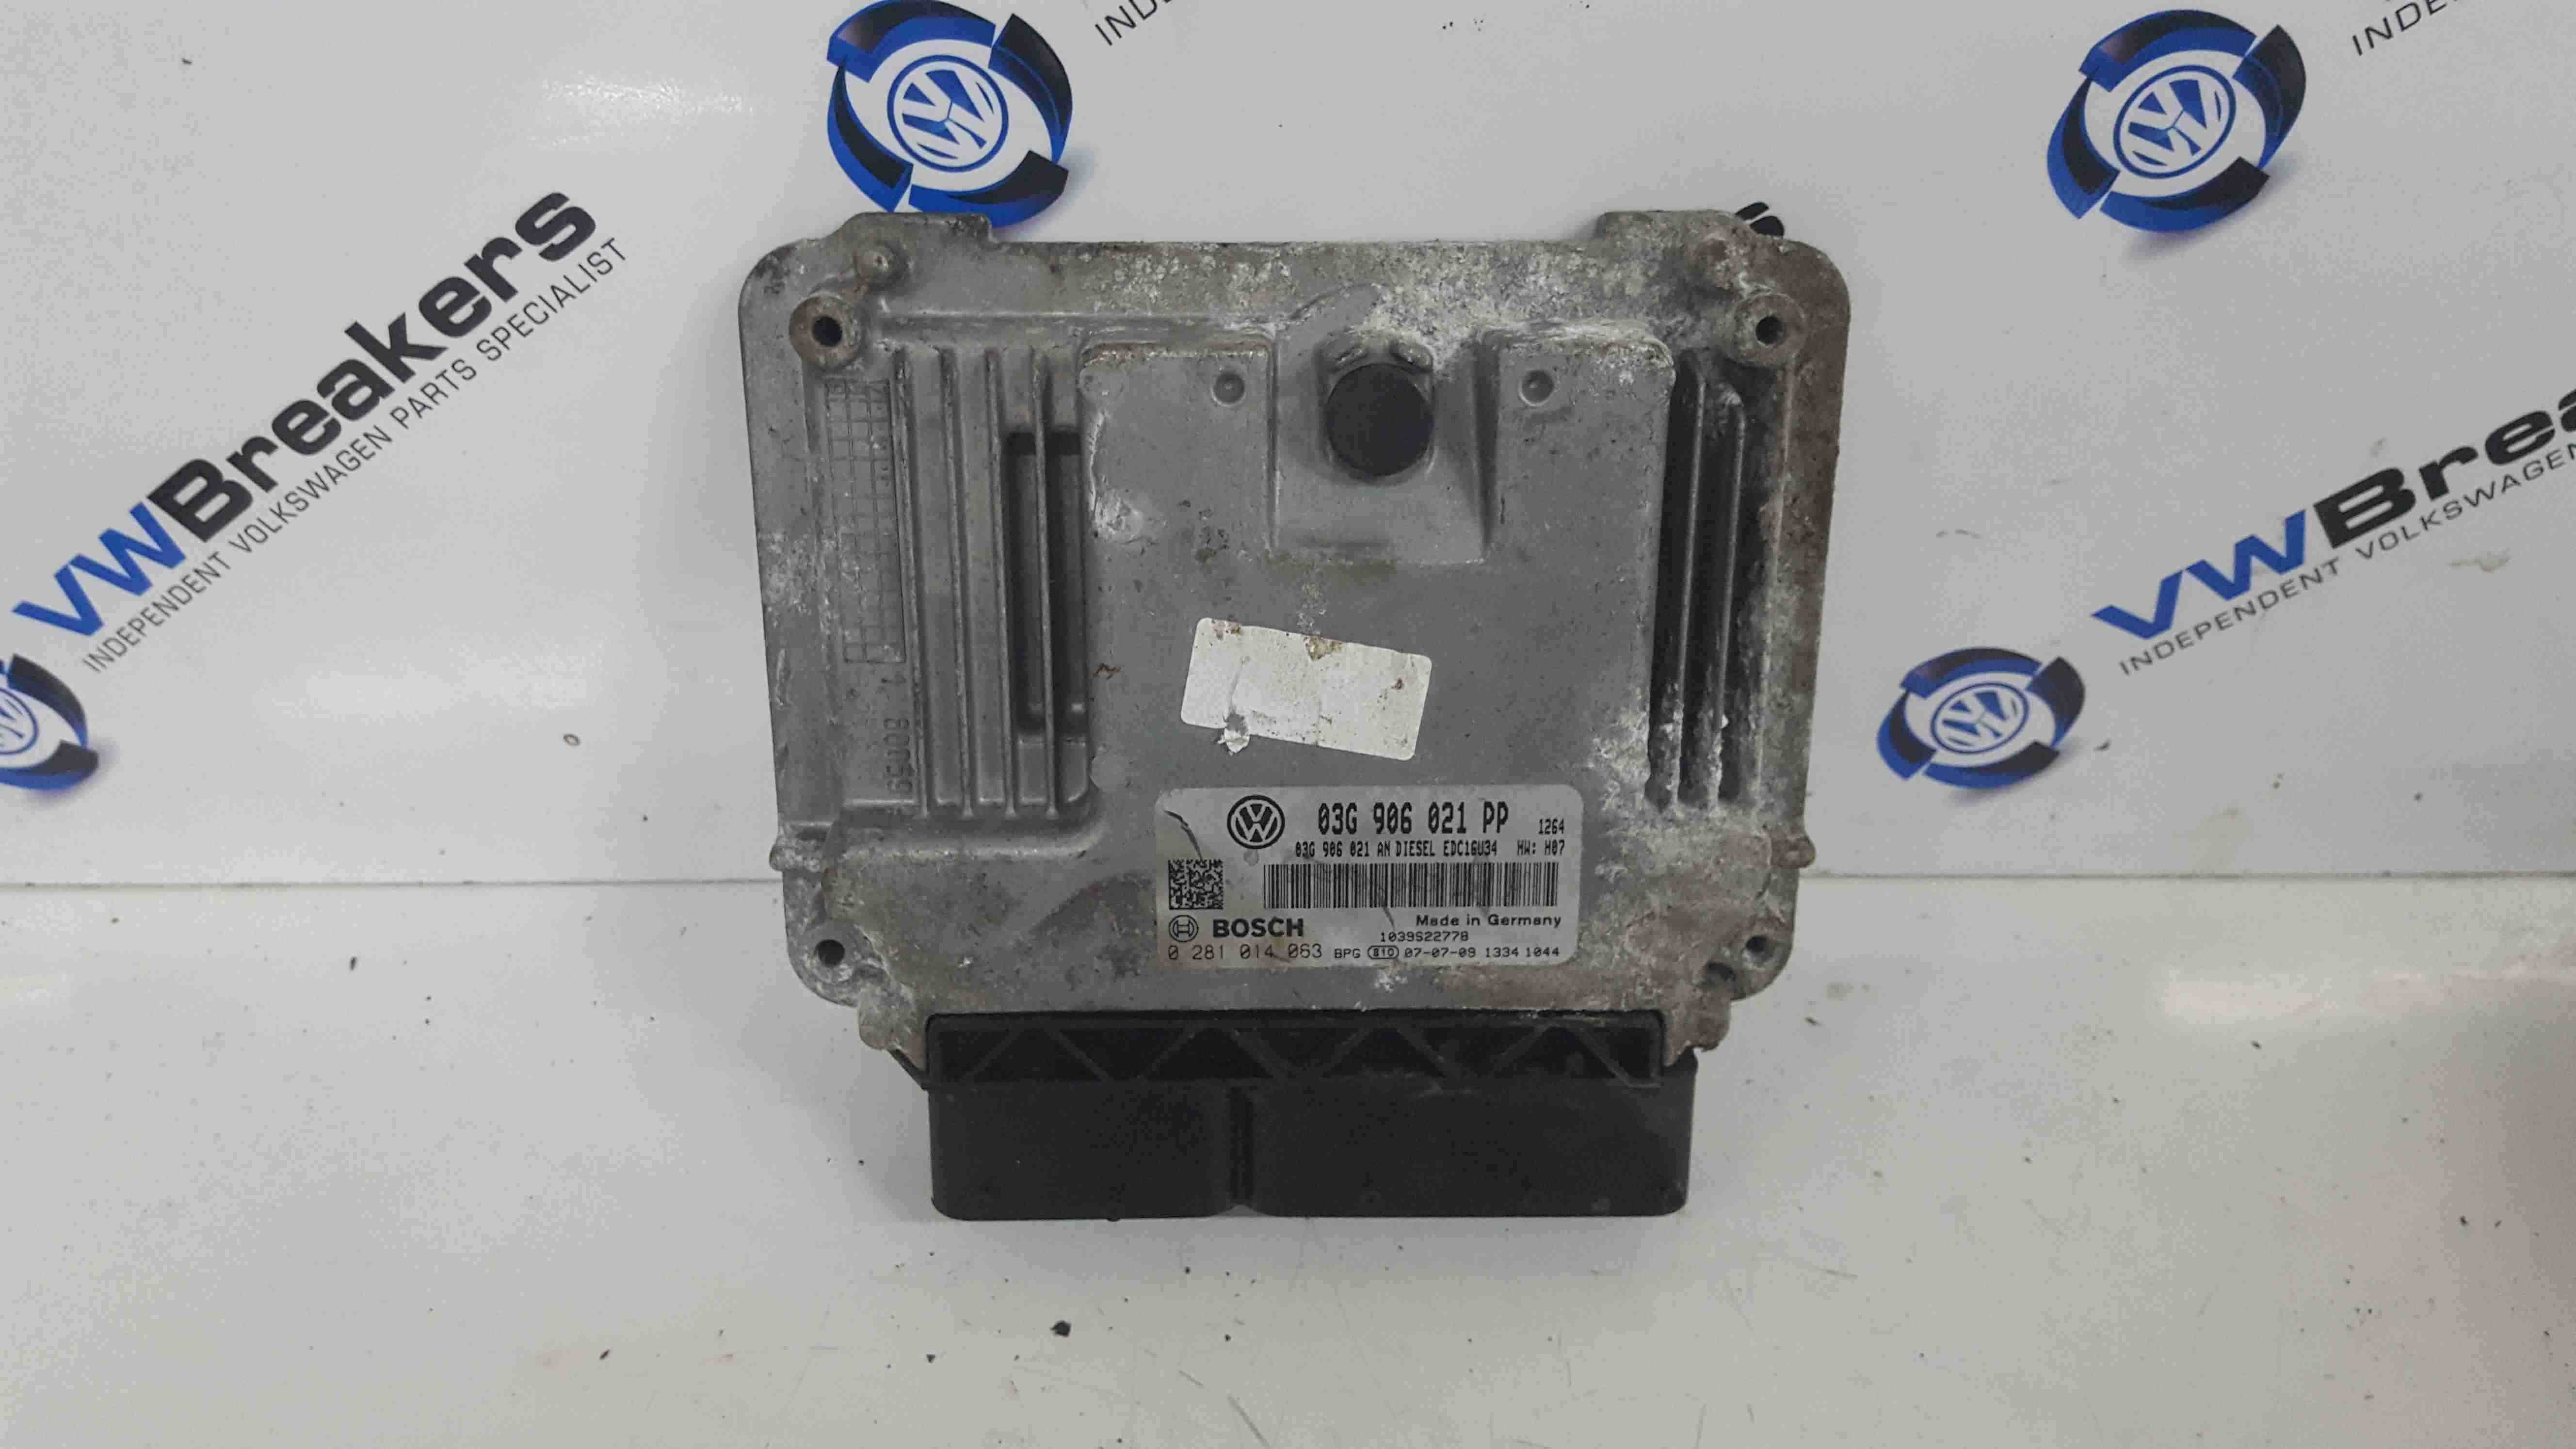 Volkswagen Golf MK5 2003-2009 2.0 TDi Engine Control Unit ECU 03g906021PP